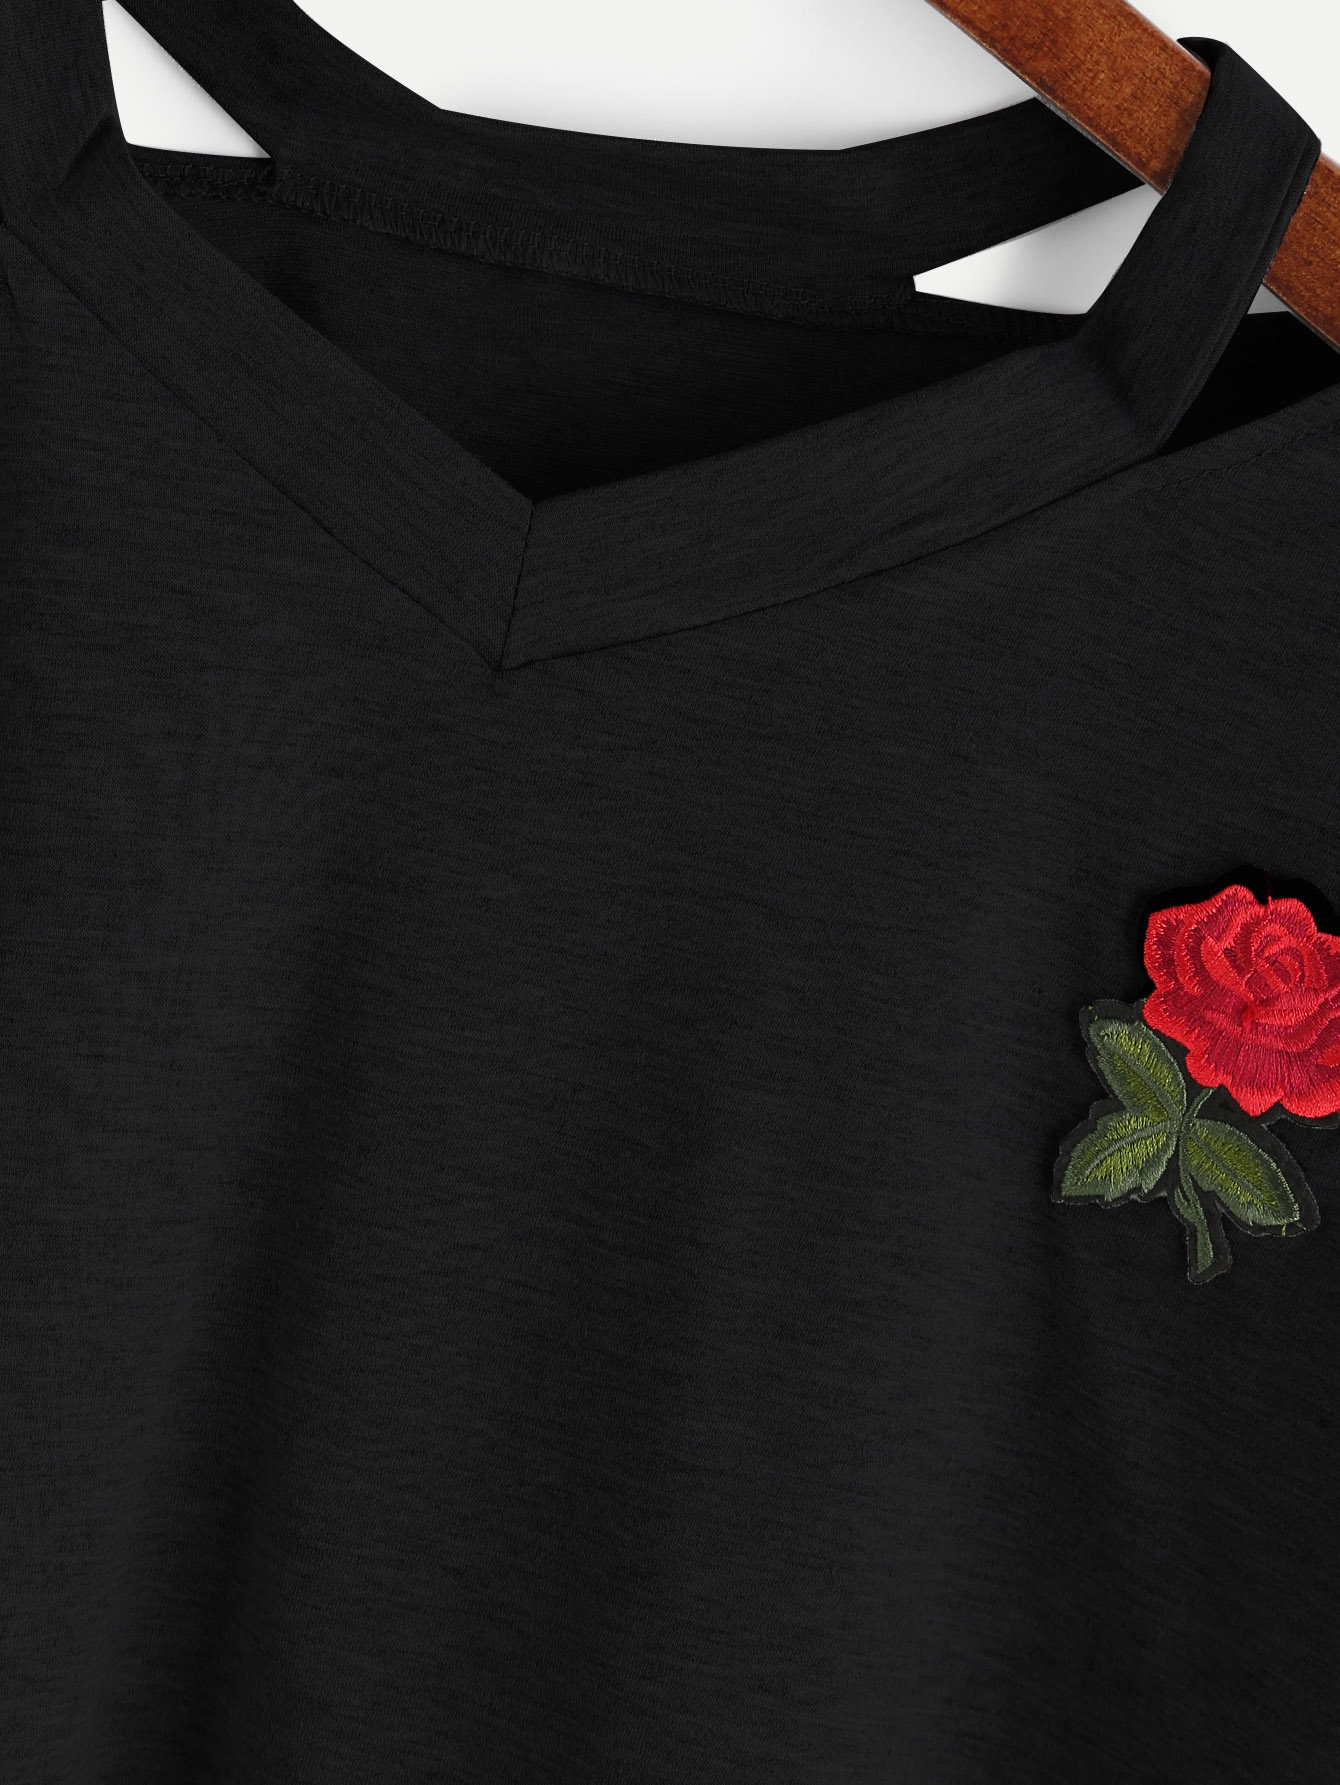 HTB10OUEQFXXXXanXXXXq6xXFXXXd - Sexy Hollow Out Short Sleeve Casual  Rose Embroidery T-shirts